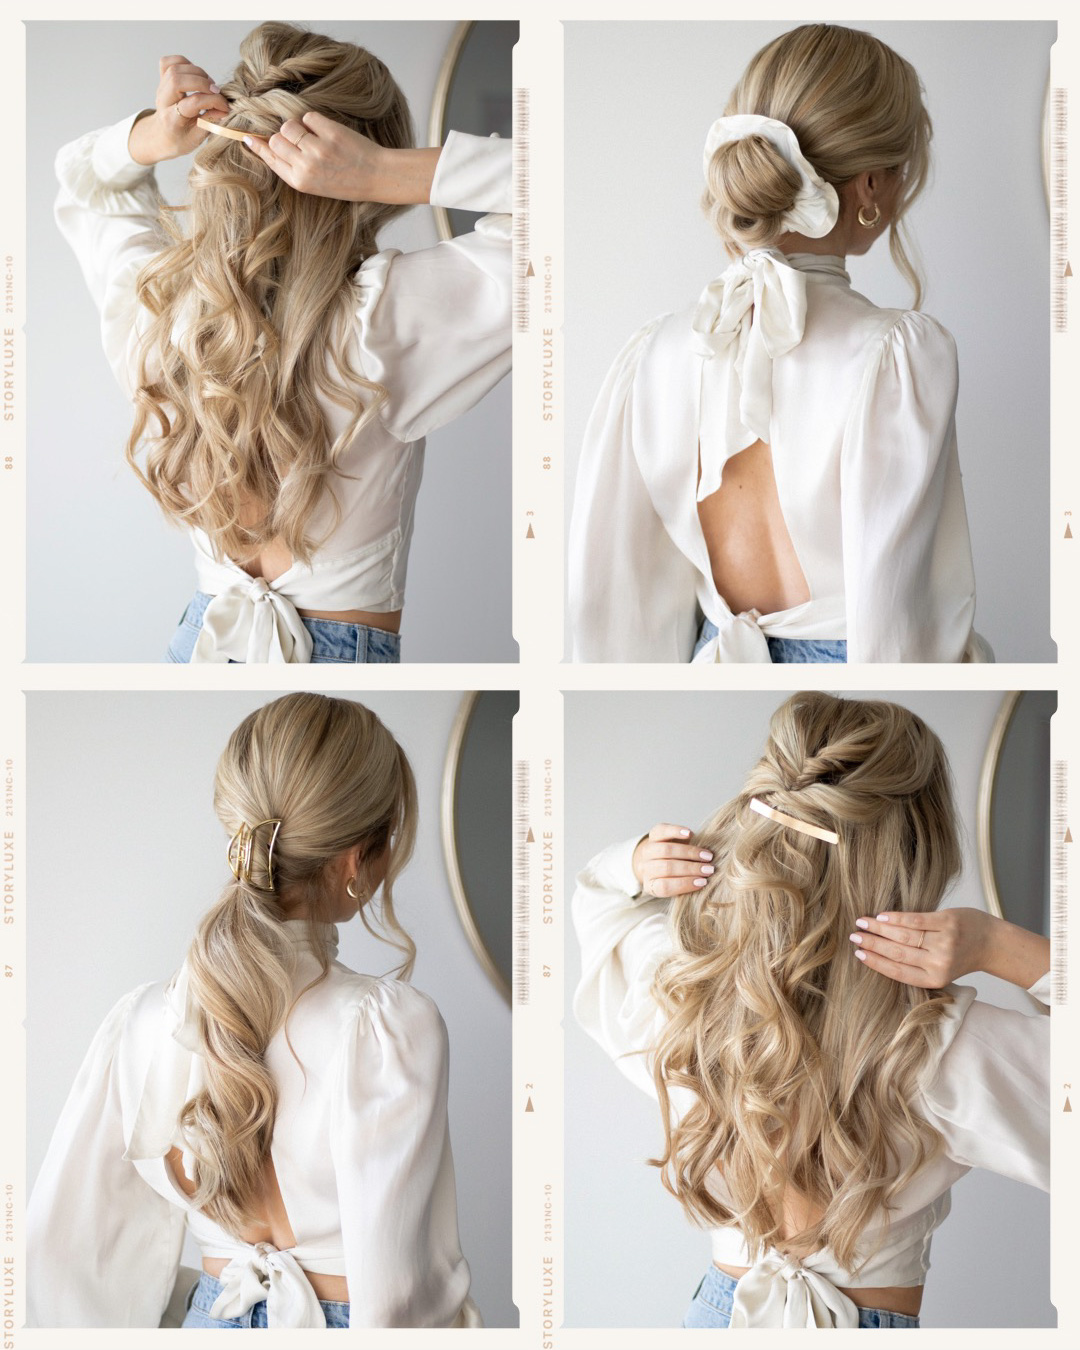 HOW TO: EASY HAIRSTYLES FOR 2020   www.alexgaboury.com